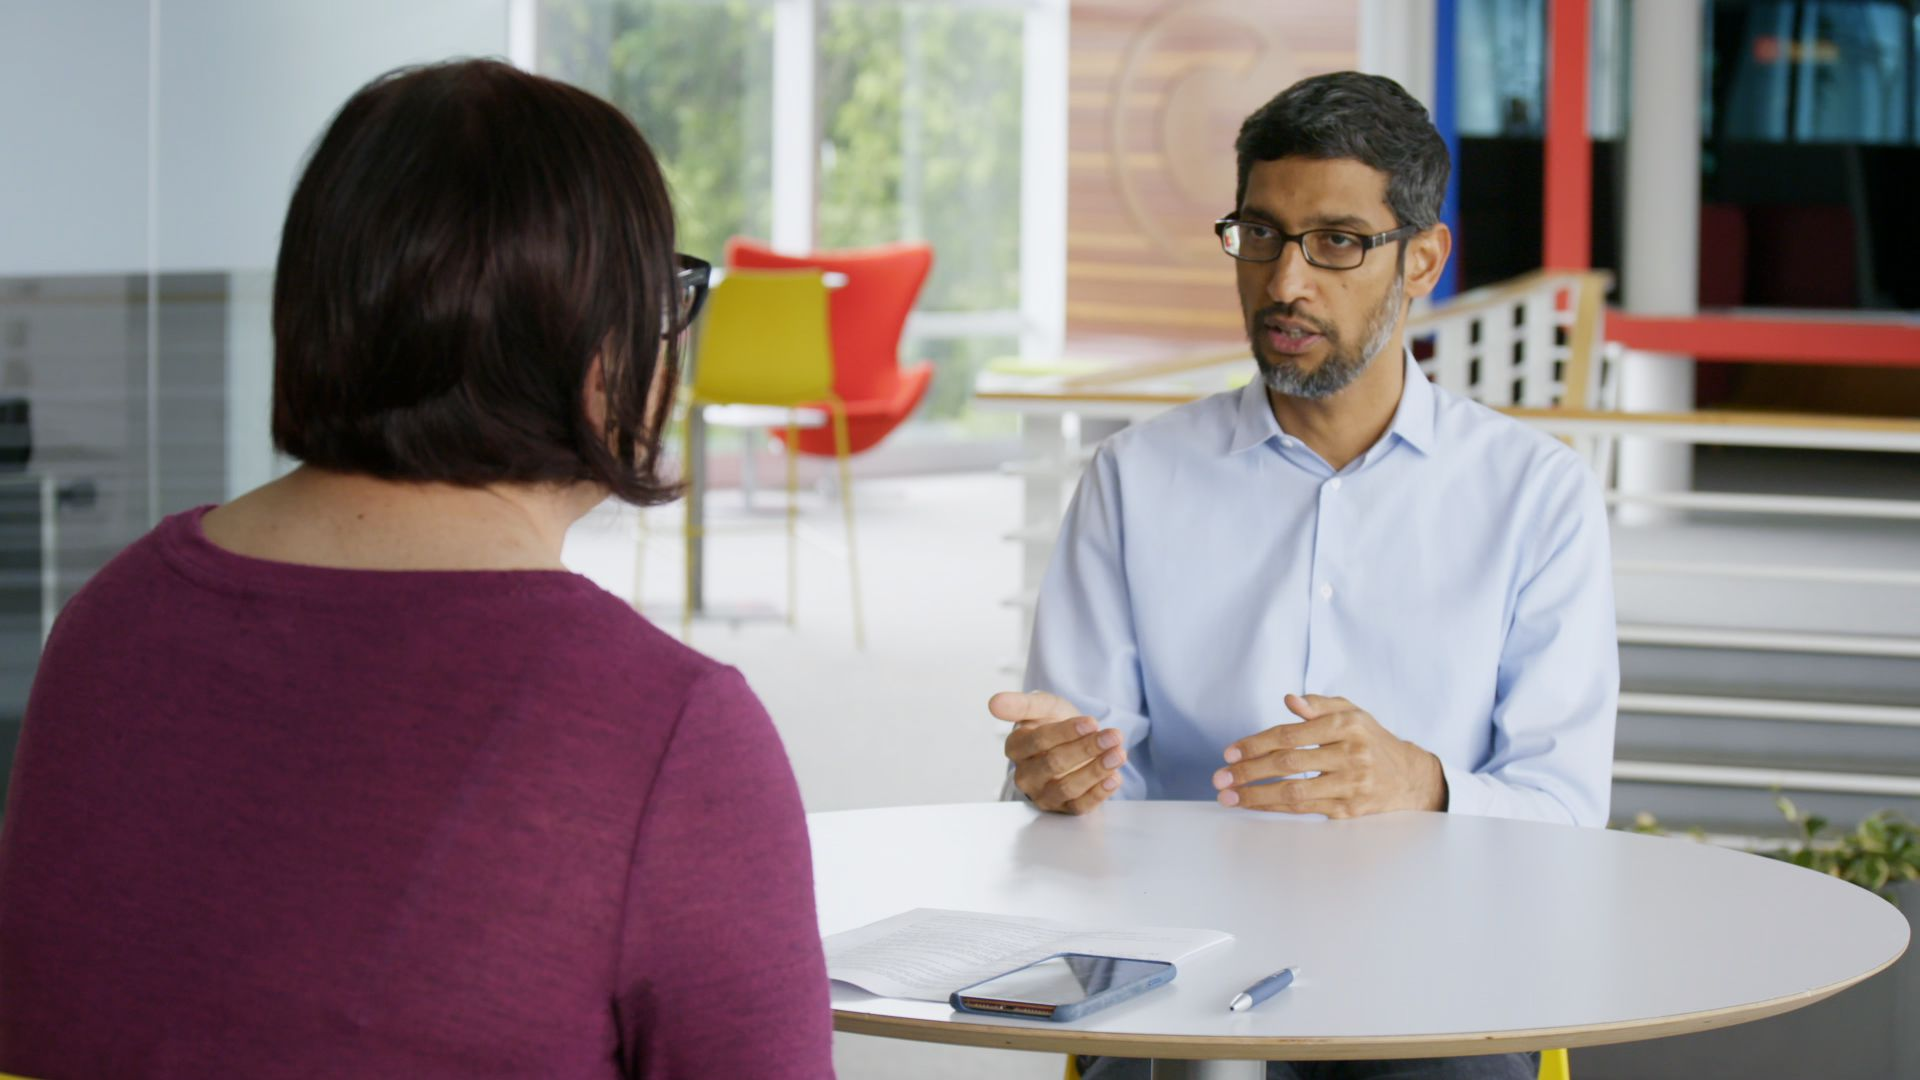 Exclusive interview: Google CEO defends YouTube practices